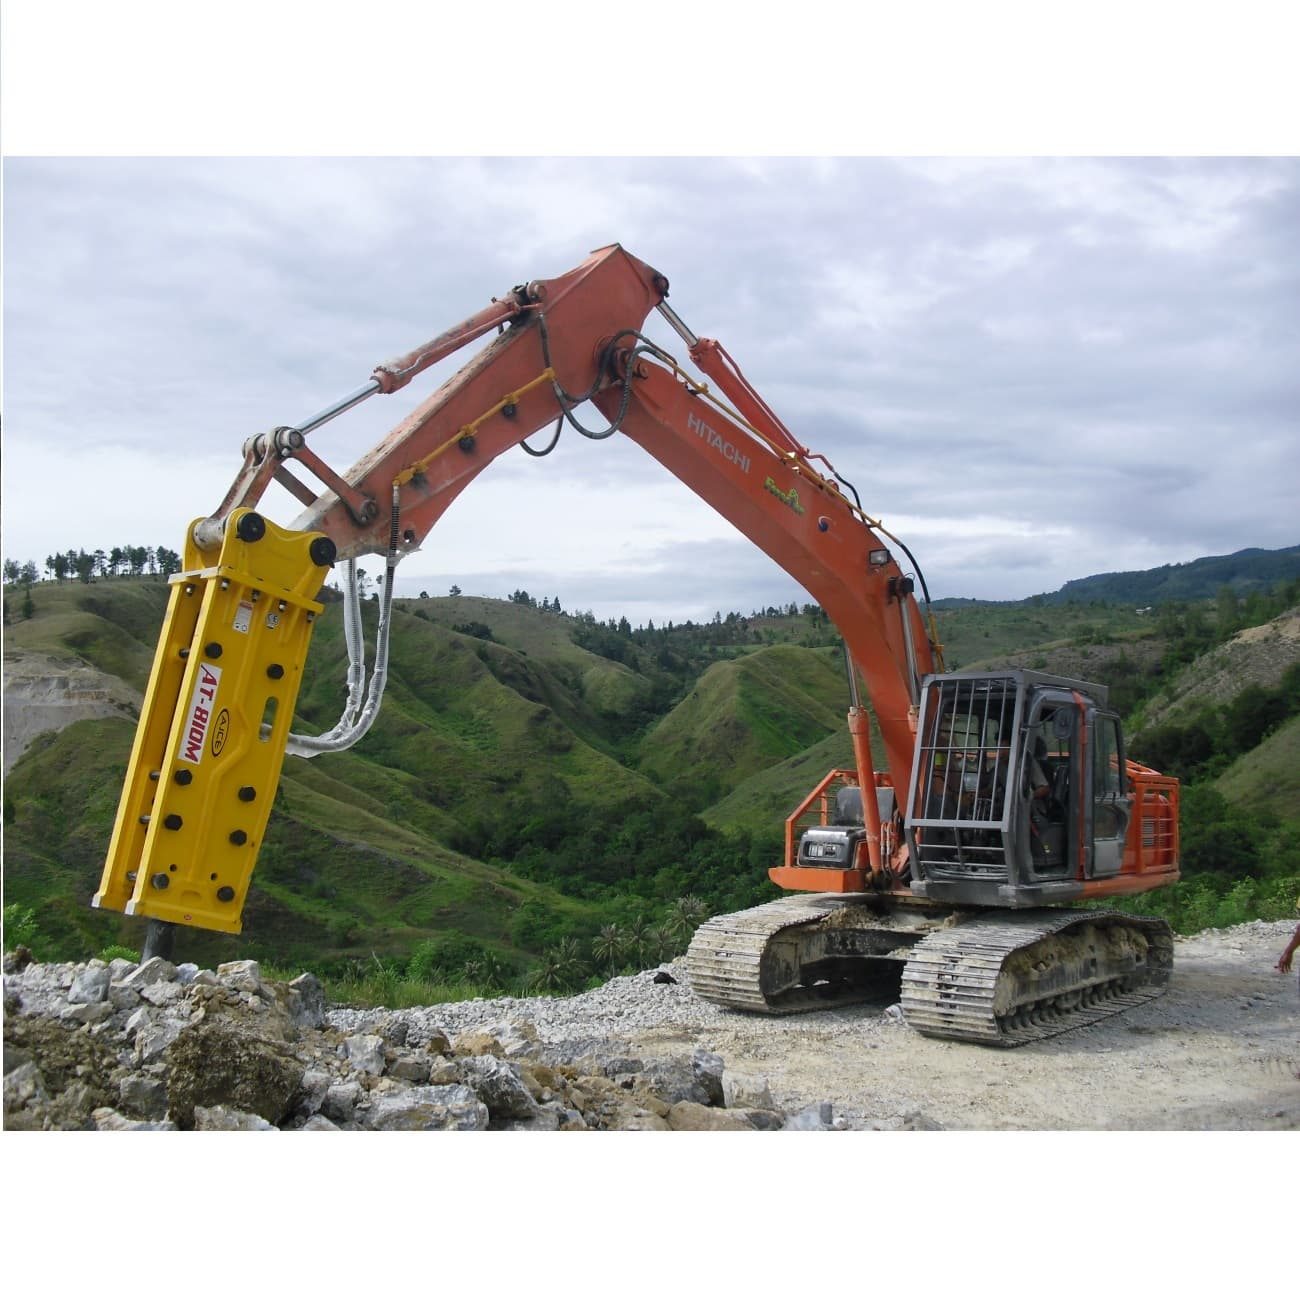 AJCE Hydraulic Breaker AT-810M